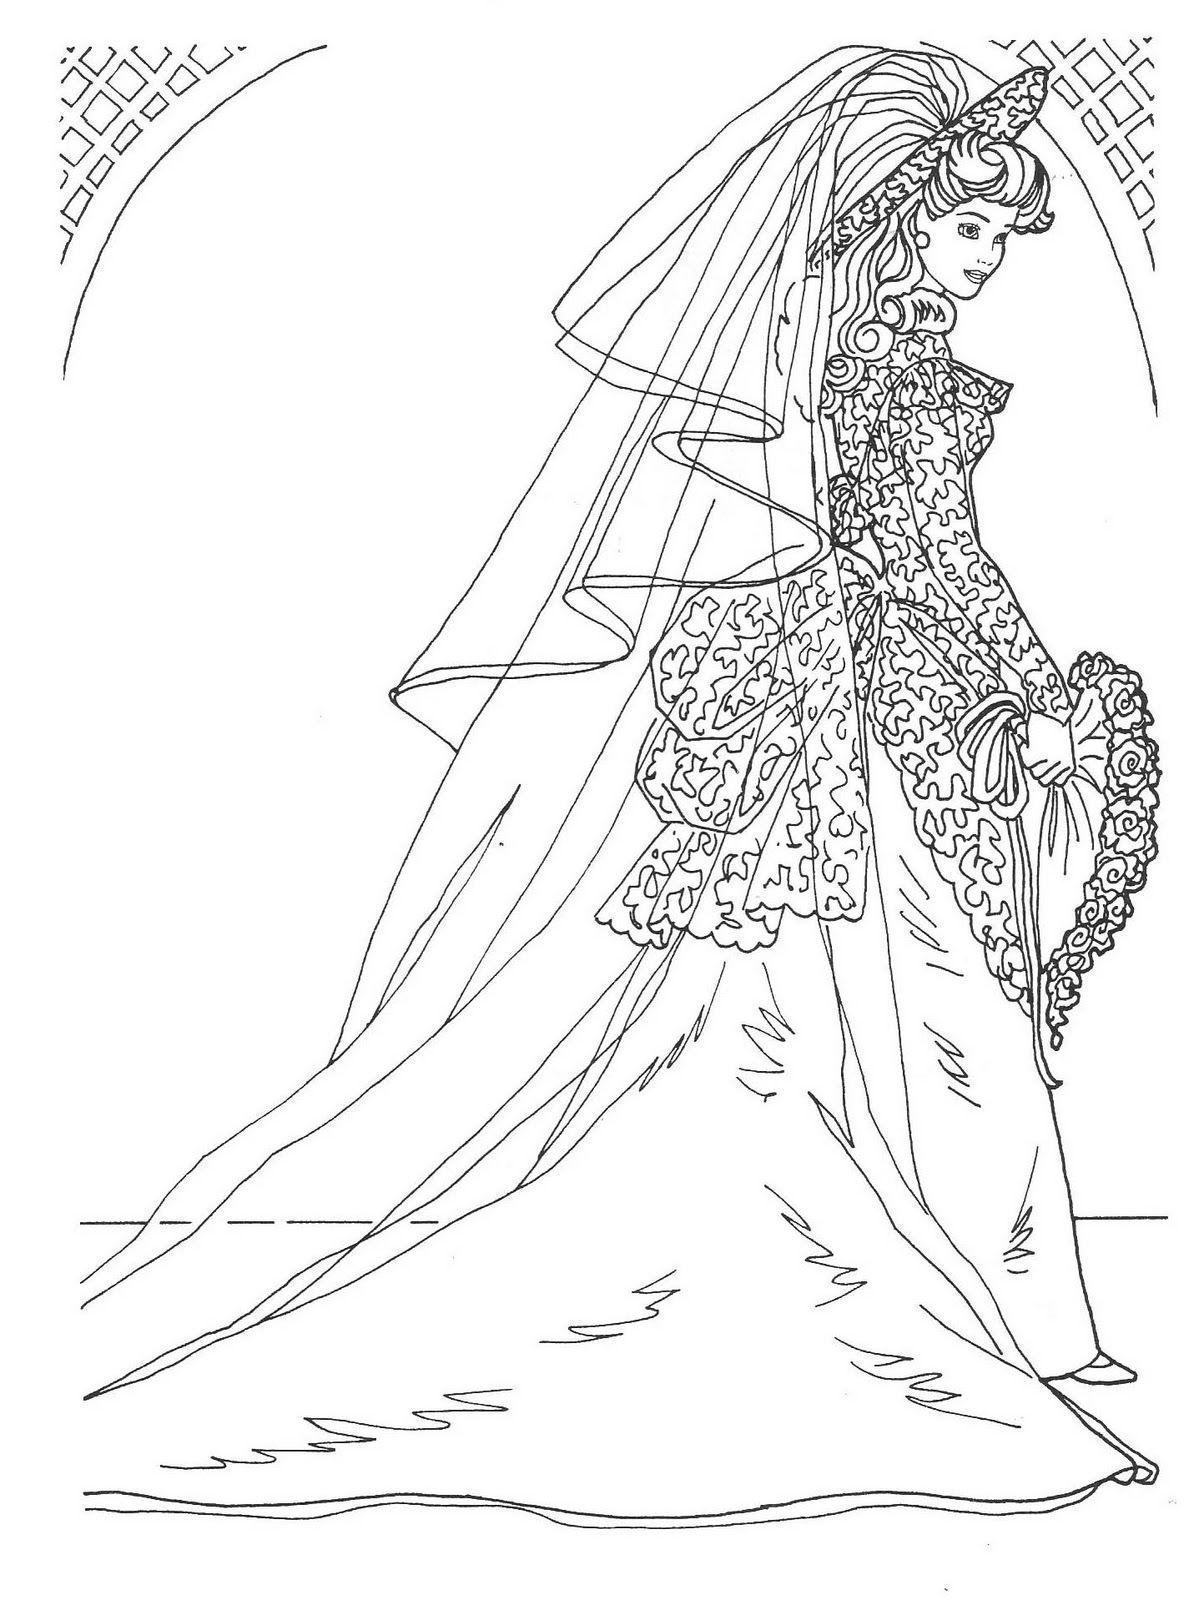 Free printable coloring pages barbie princess - These Coloring Pages Are For Those Of You Out There Who Were Looking For Some Good Barbie Bridal Coloring Pages Here You Have Two Lovely Im Printable